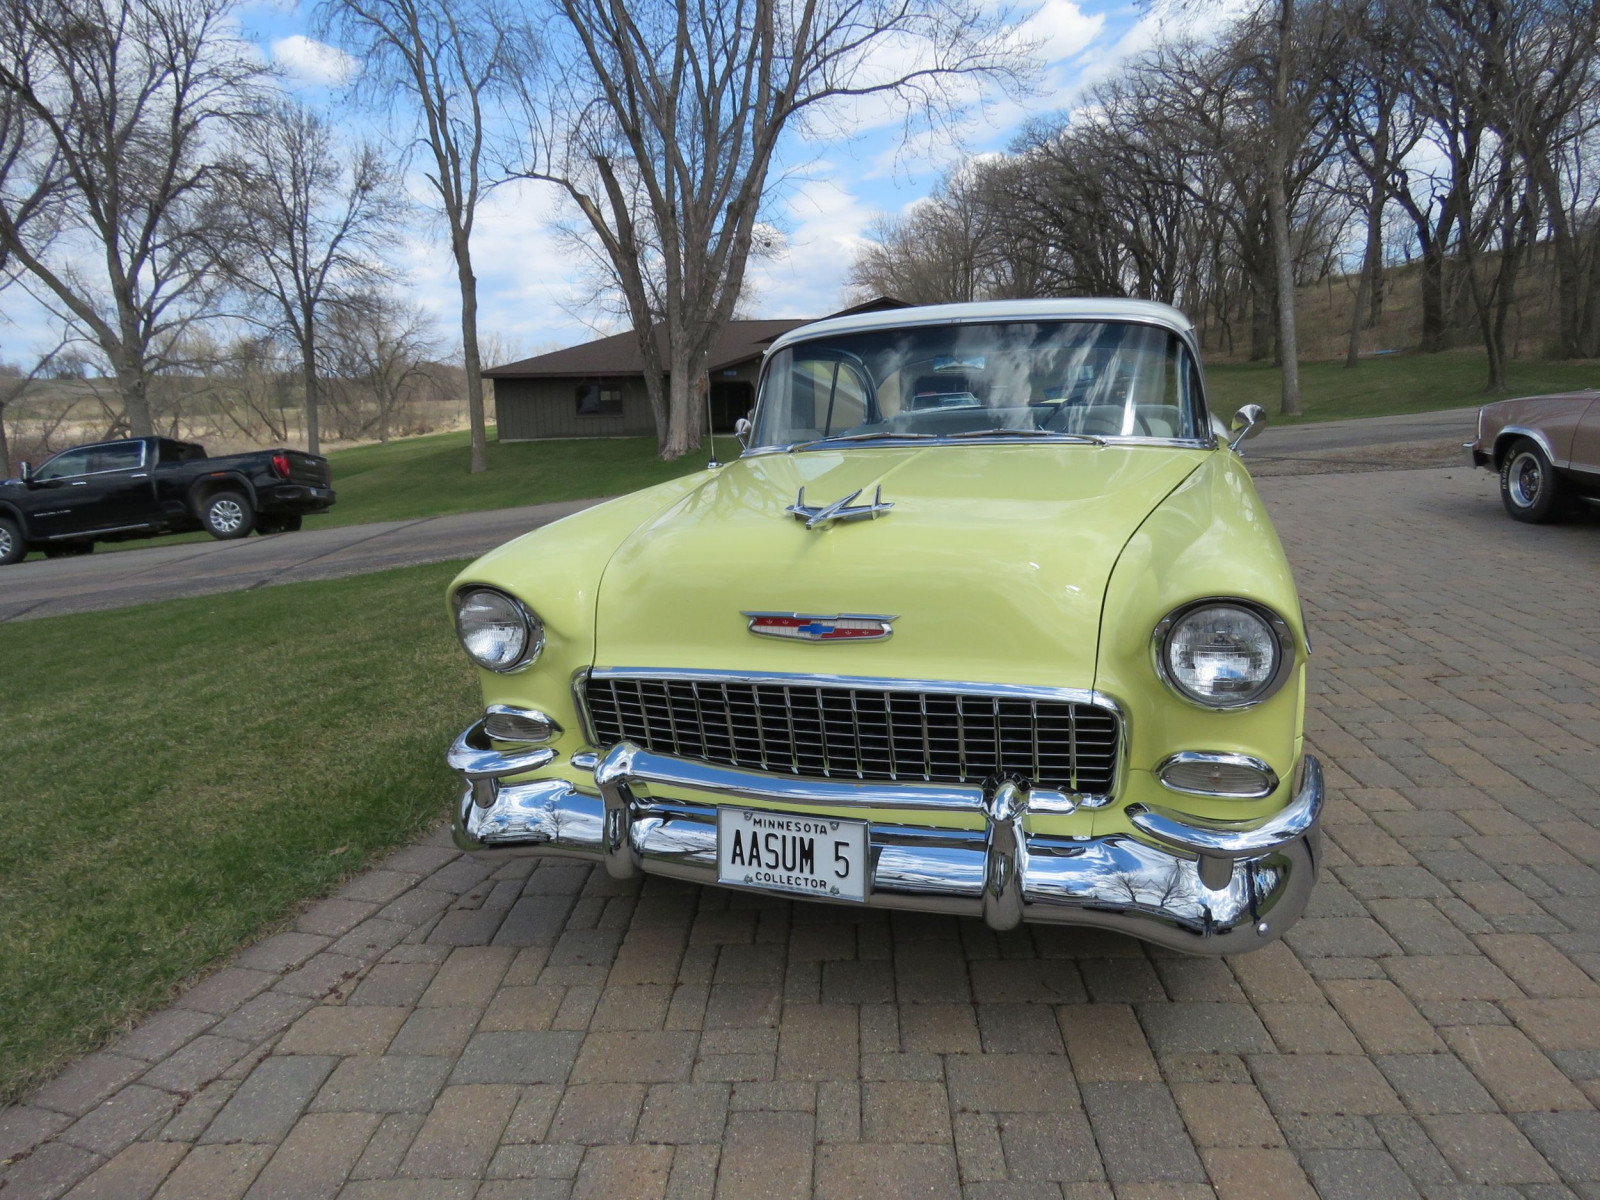 Beautiful 1955 Chevrolet Bel Air 2dr HT - Image 2